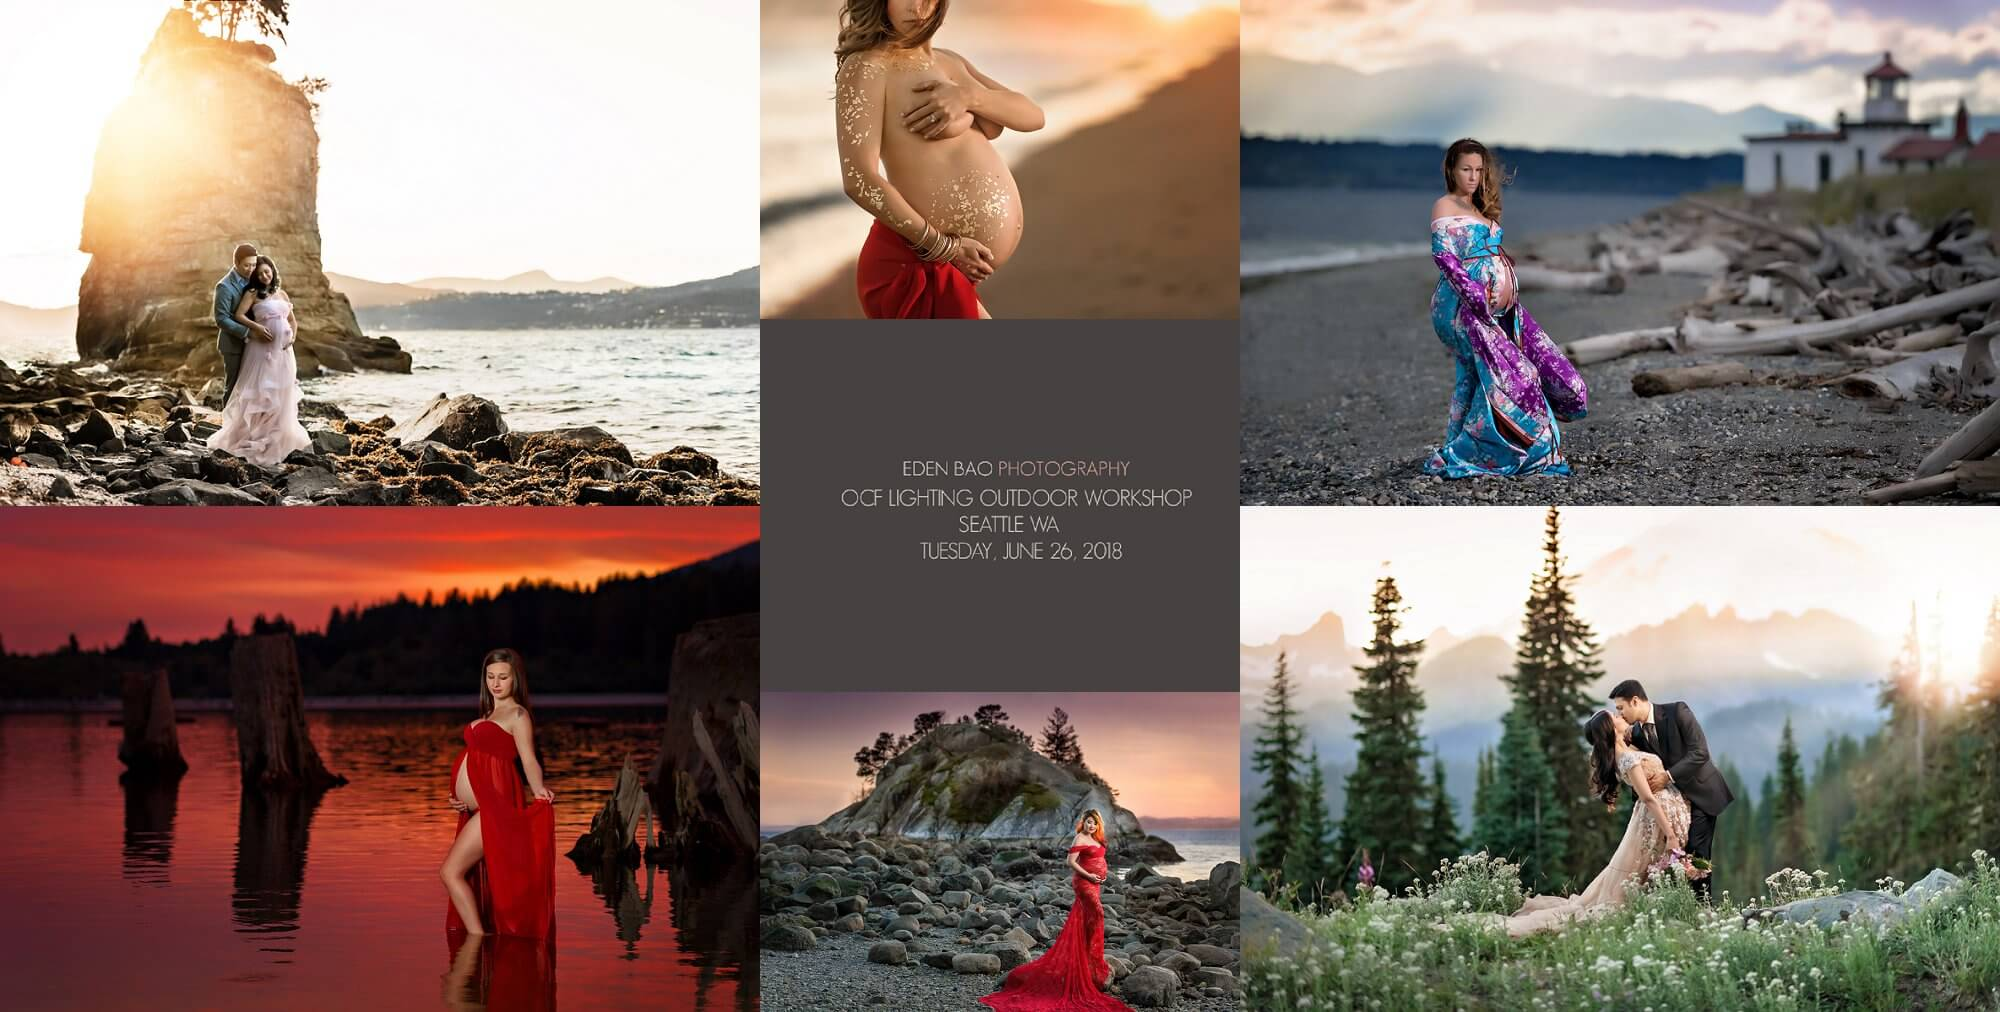 Intro to OCF Lighting Outdoors Seattle Workshop 2018